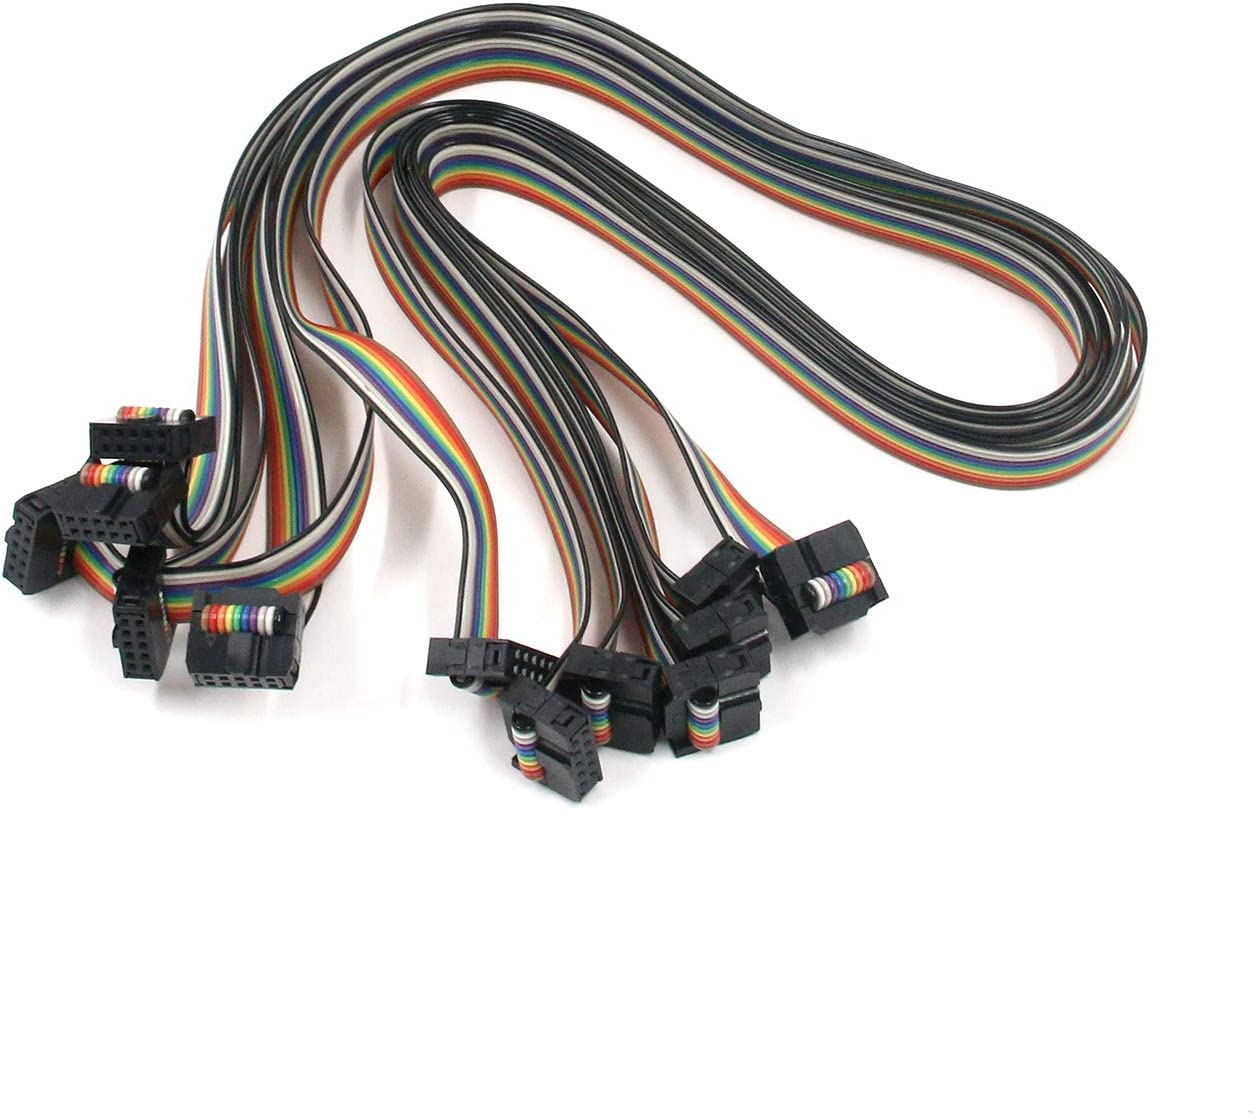 SWD Cable 150 Ribbon Cables // IDC Cables 10 pin 2x5 Socket-Socket 1.27mm IDC